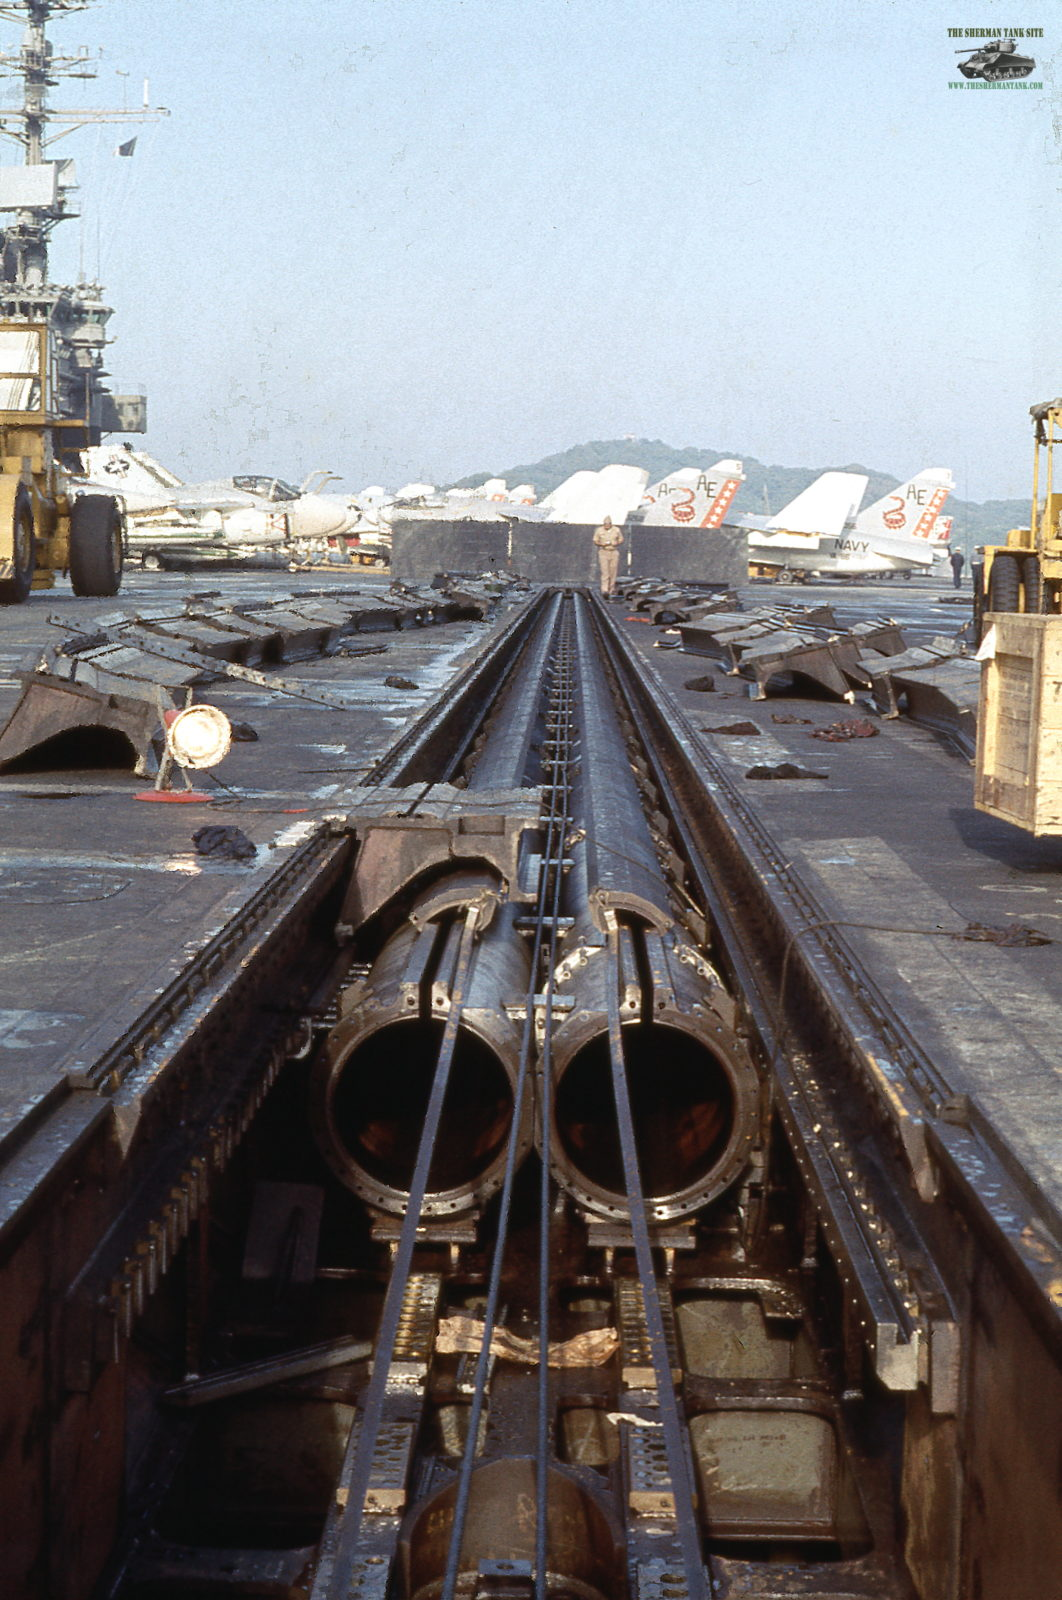 Old-Navy-PicsII157-USS-America-Cat-maint